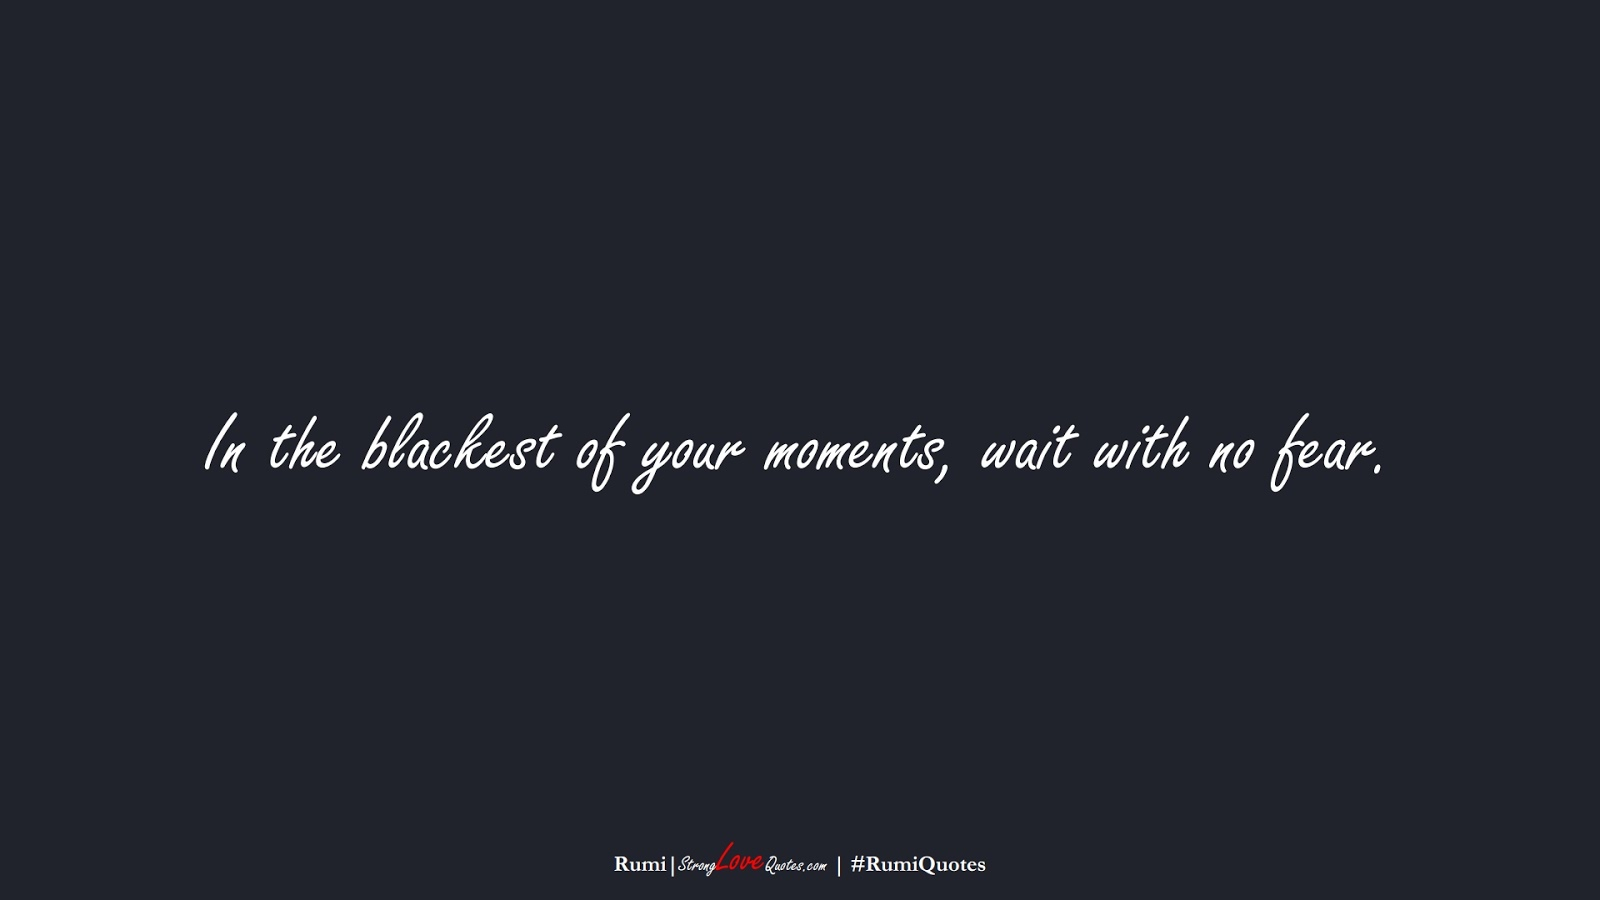 In the blackest of your moments, wait with no fear. (Rumi);  #RumiQuotes